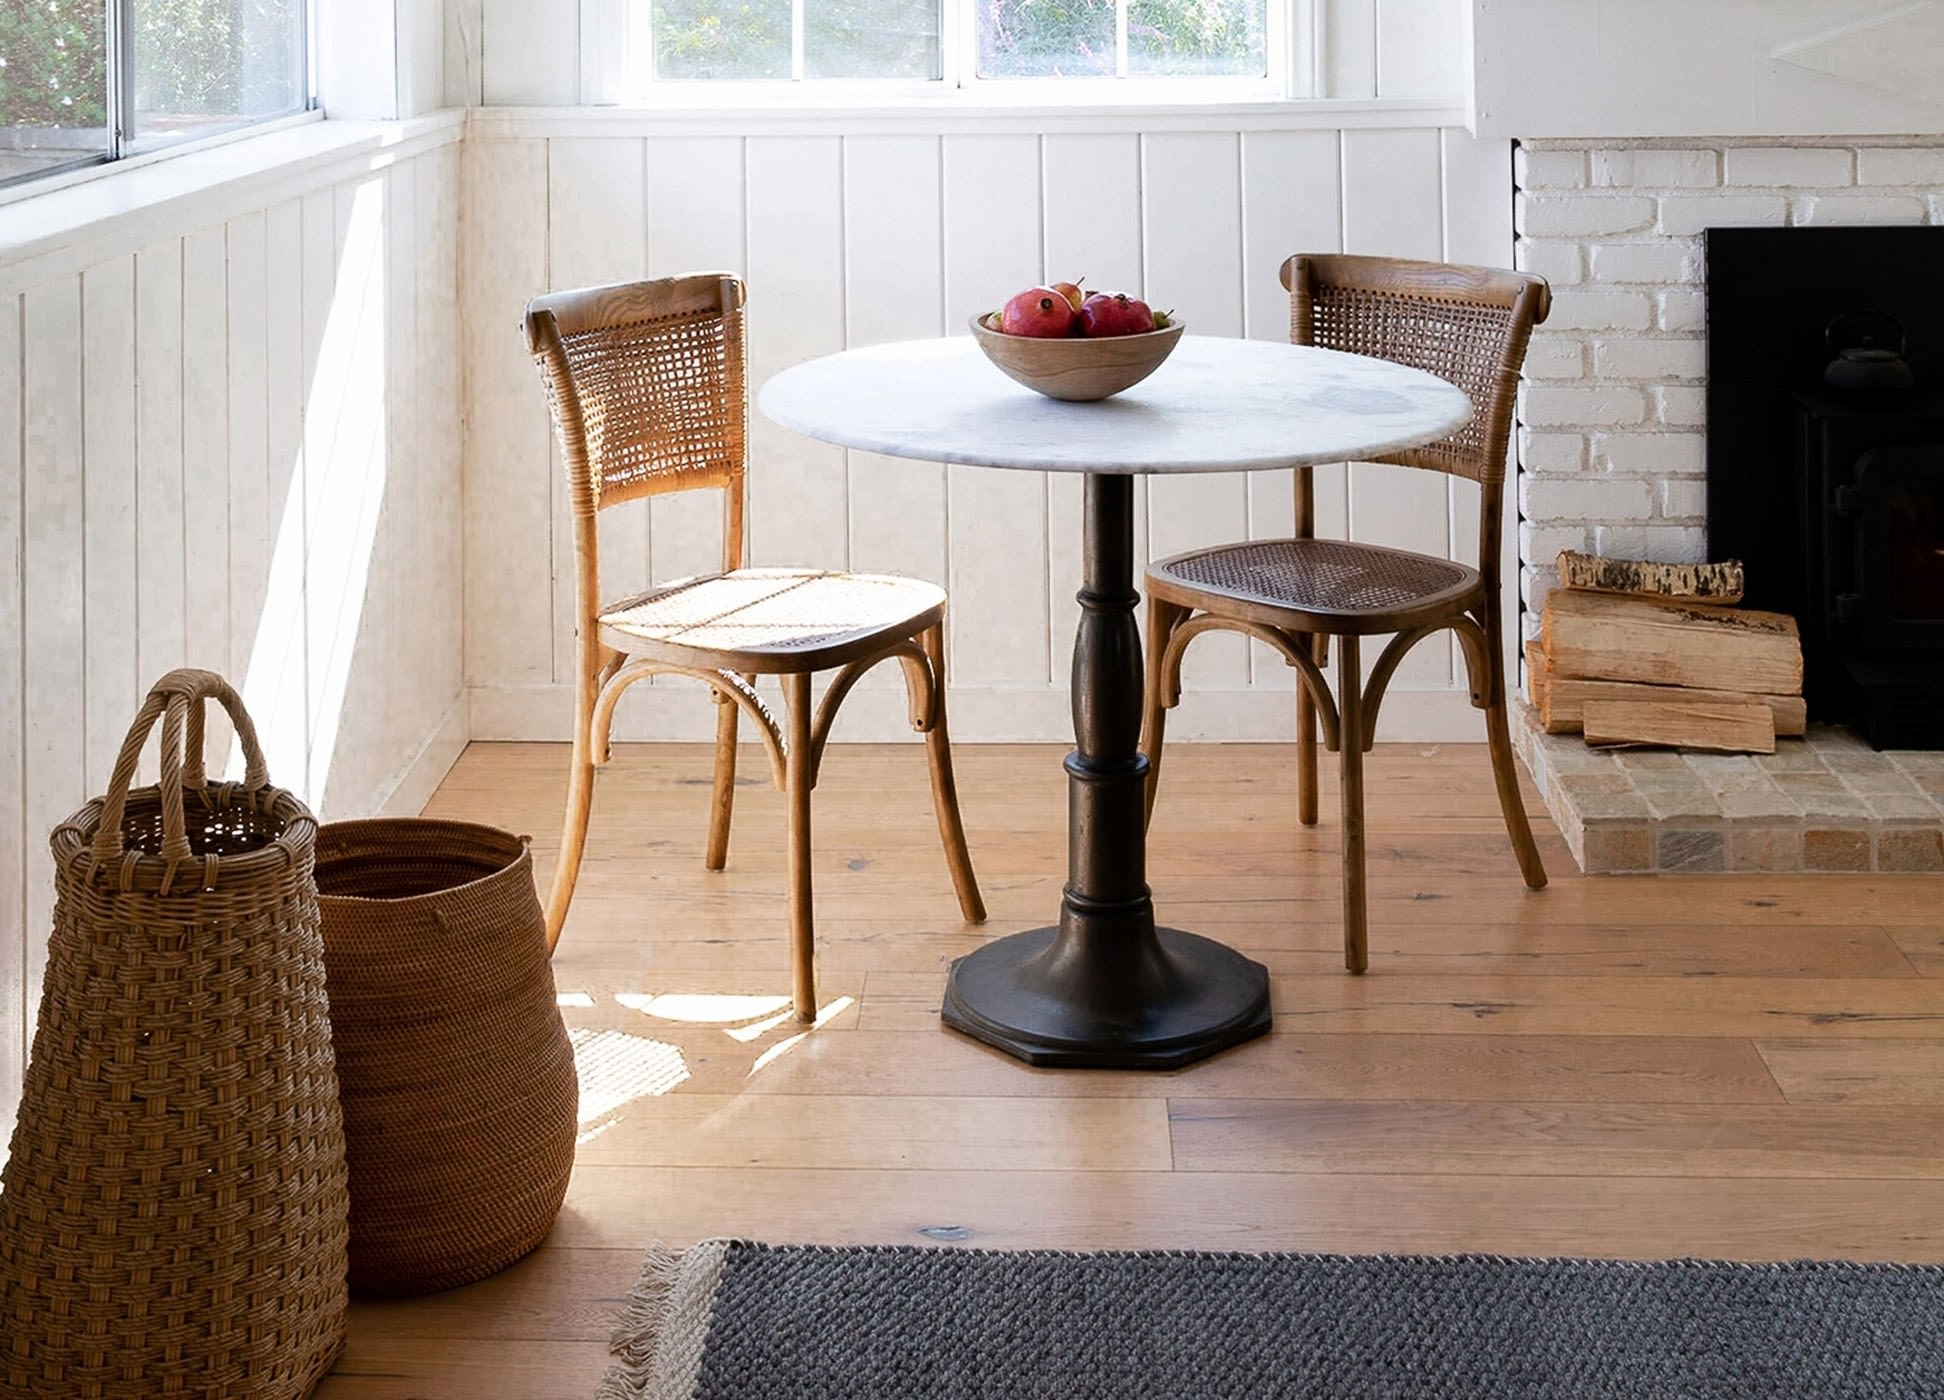 Dining Tables In Smoked/seared Oak within Newest Stories - Styling Series: How To Pair Dining Tables And Chairs